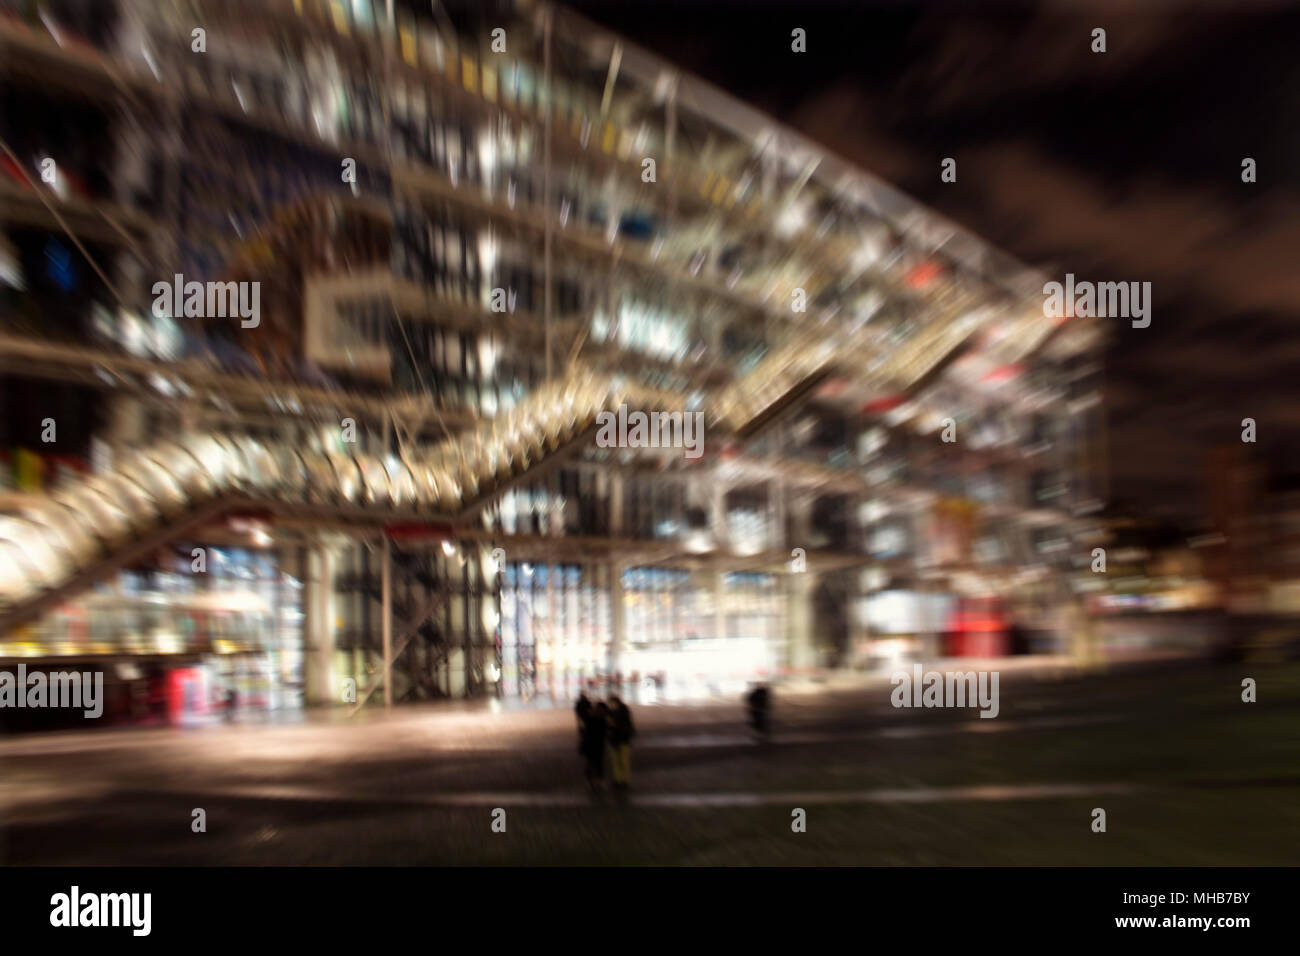 Blurry Motion Image Of People Walking In Front Of A Modern